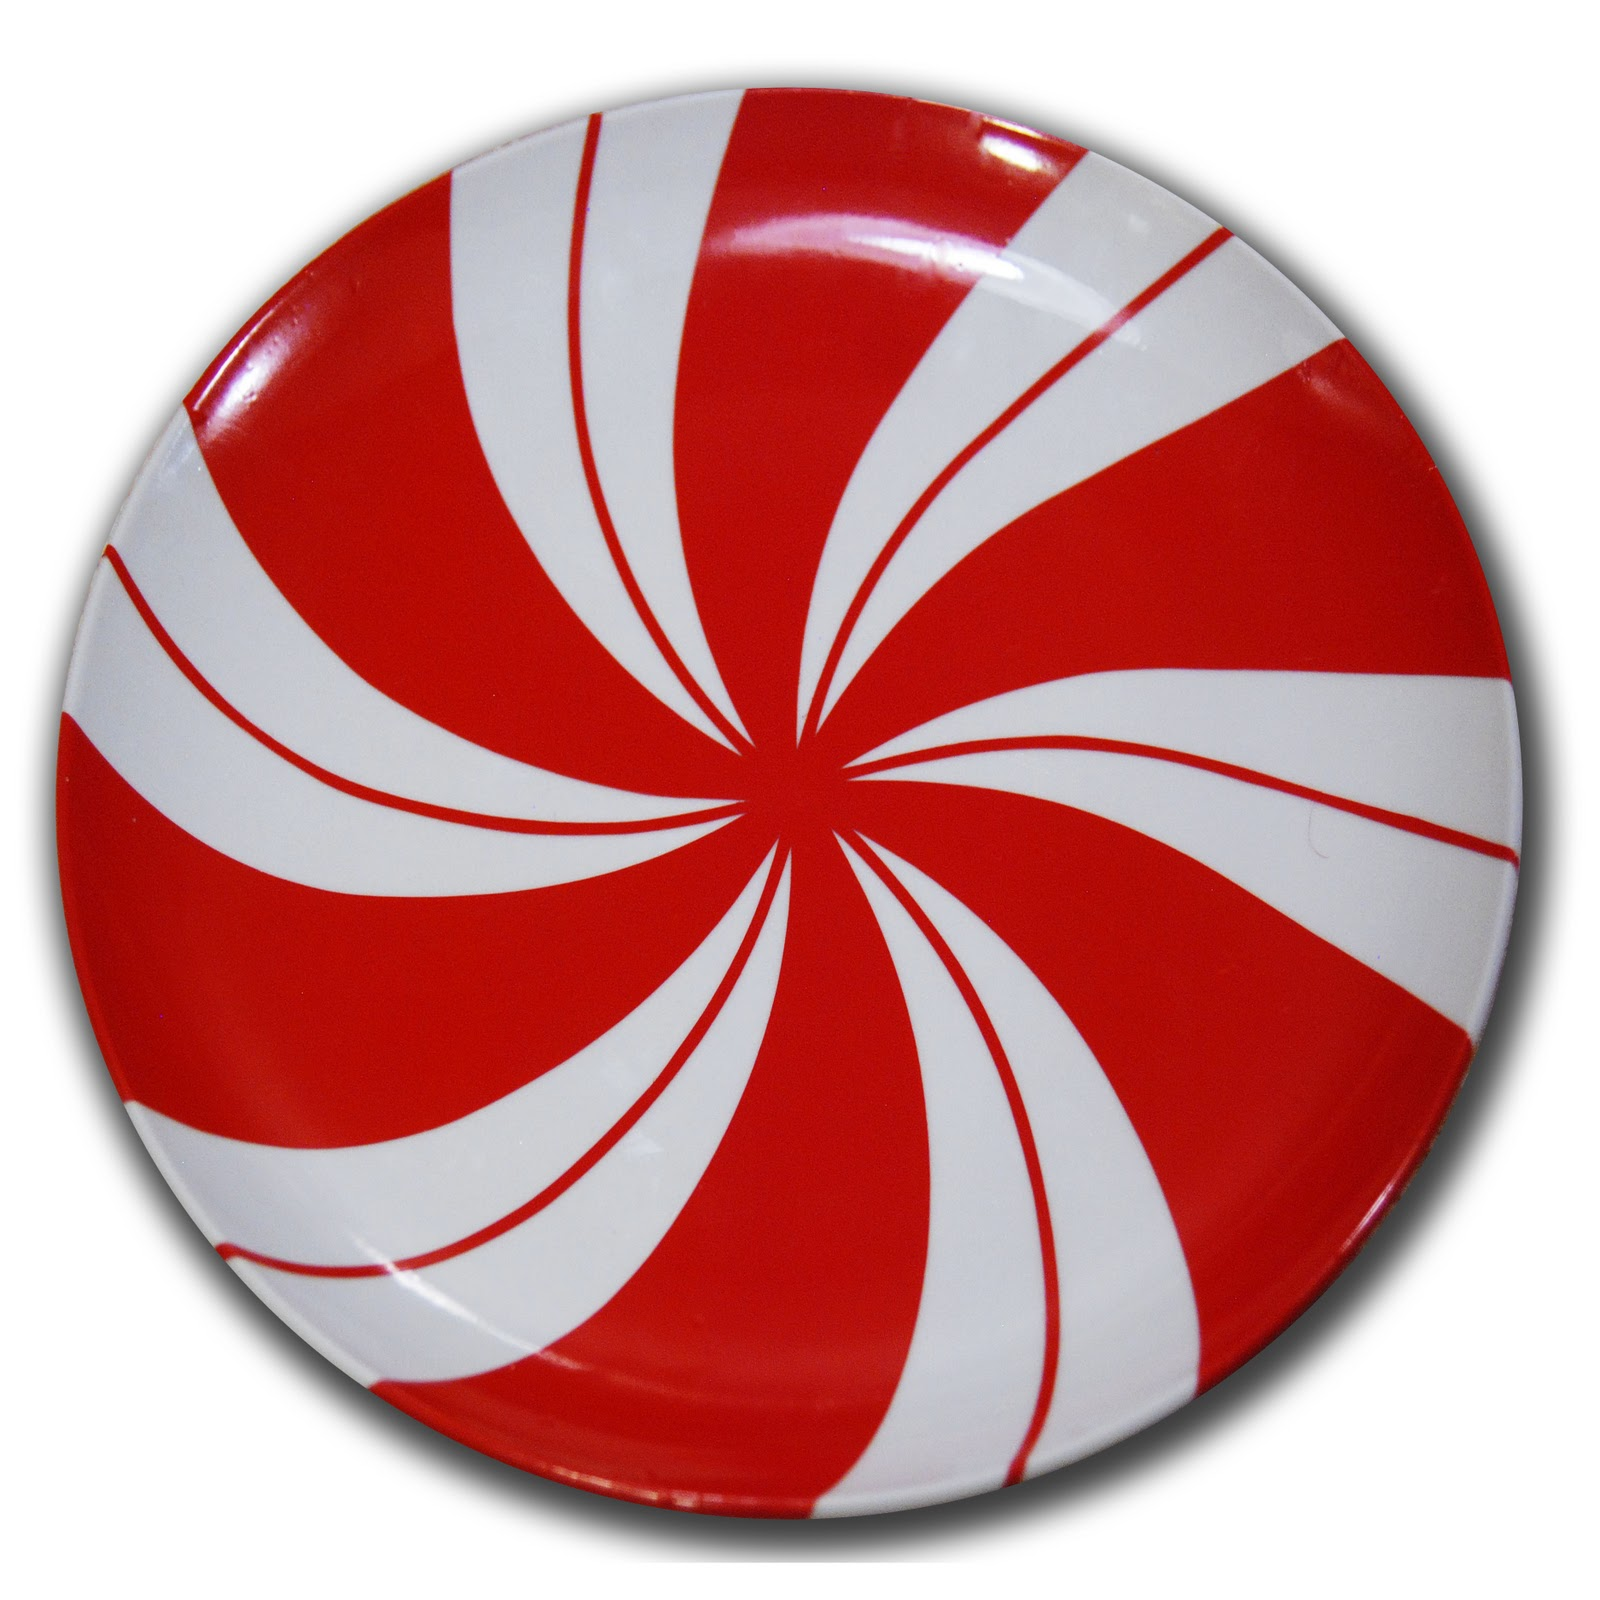 1600x1600 Peppermint Candy Clipart